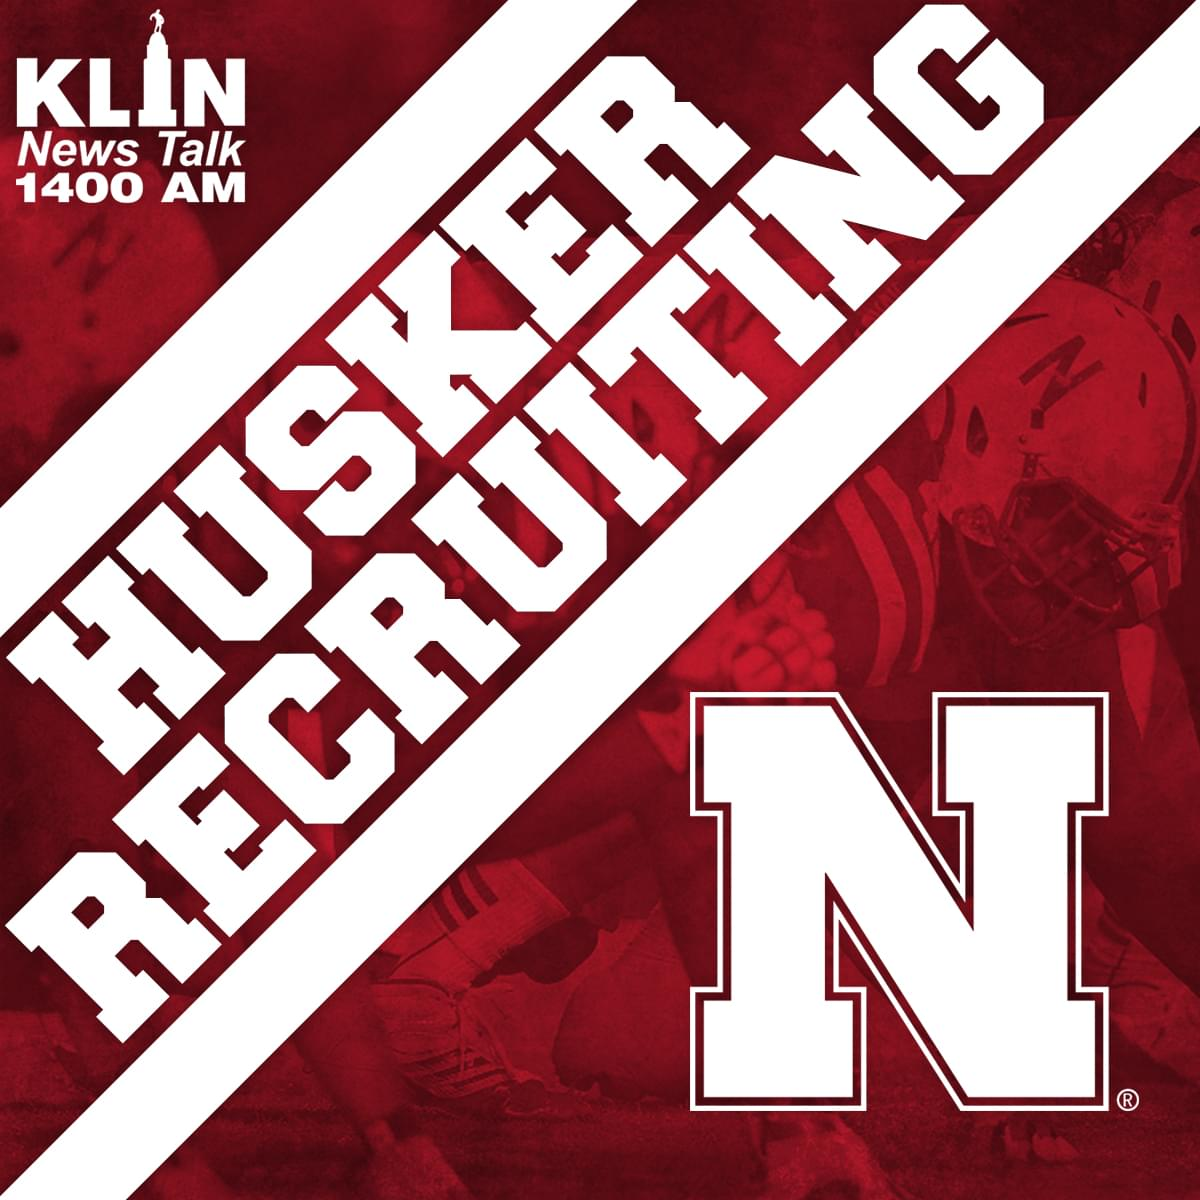 Husker Football Team in Midst of Big Recruiting Haul